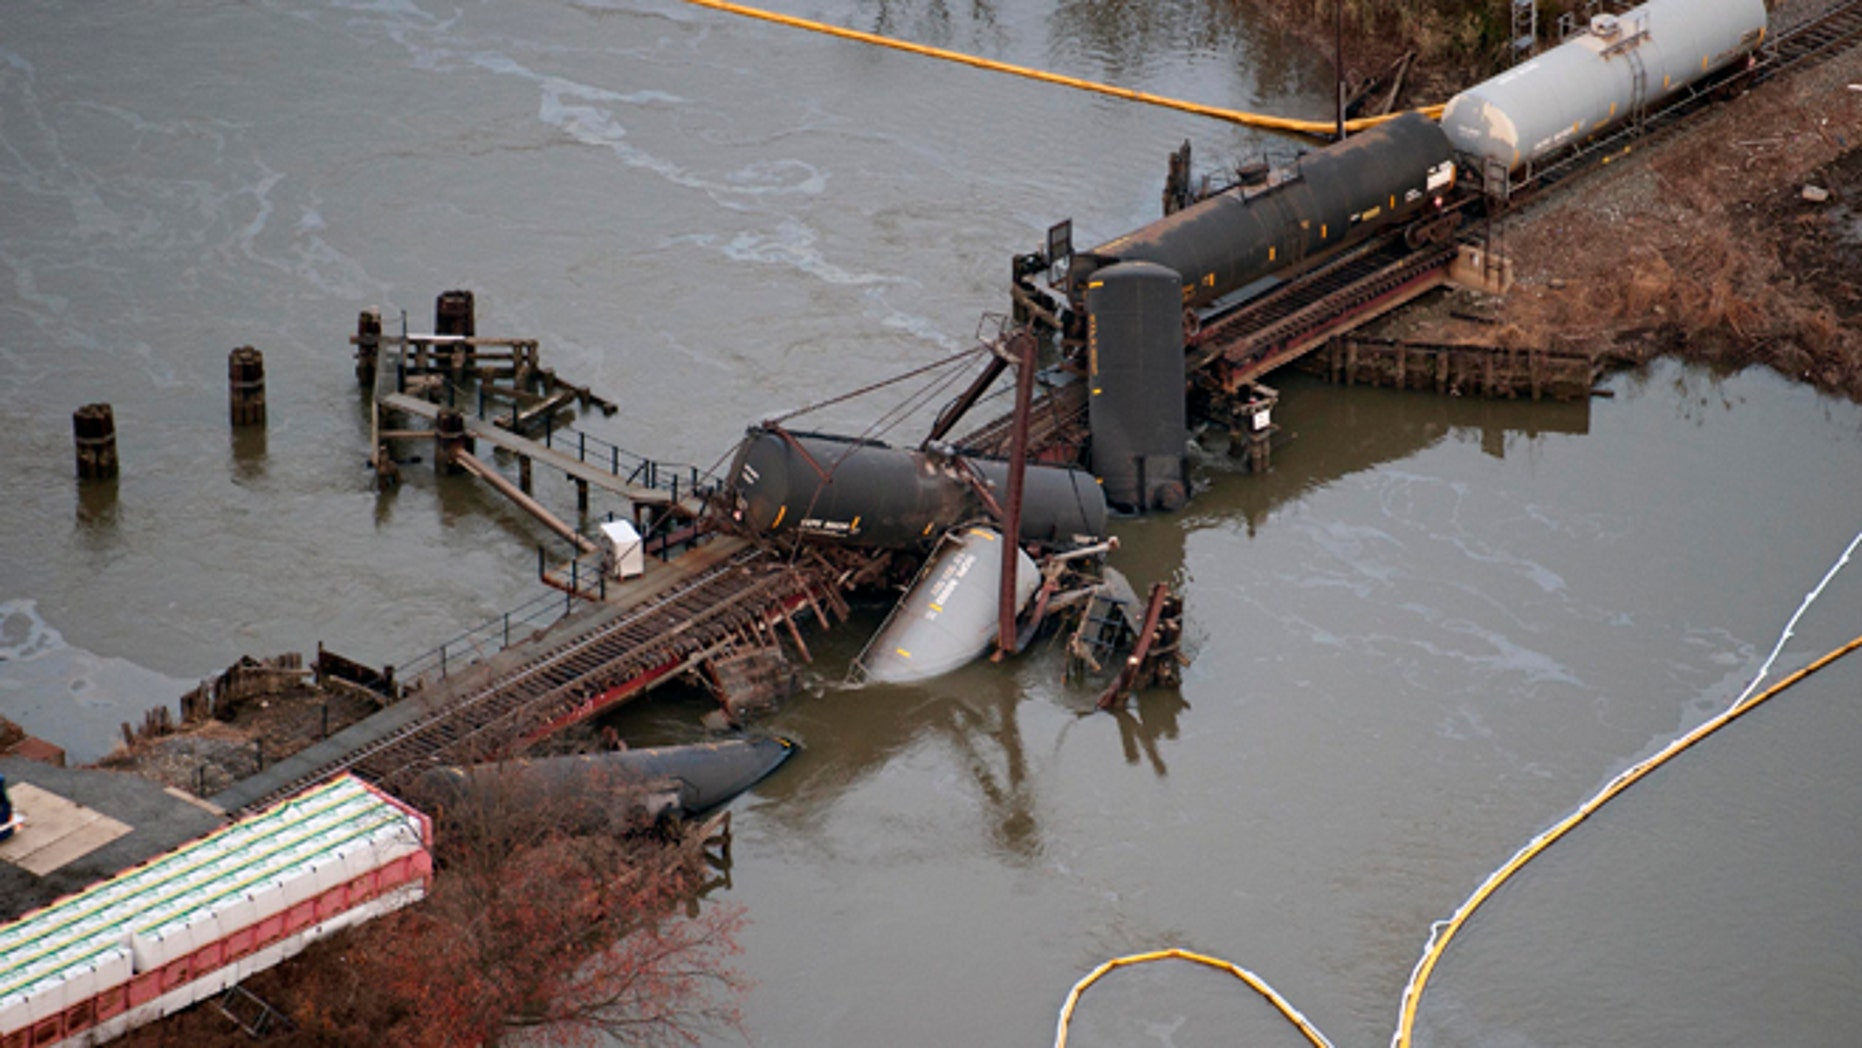 Nov. 30: Several cars lay in the water after a freight train derailed in Paulsboro, N.J.